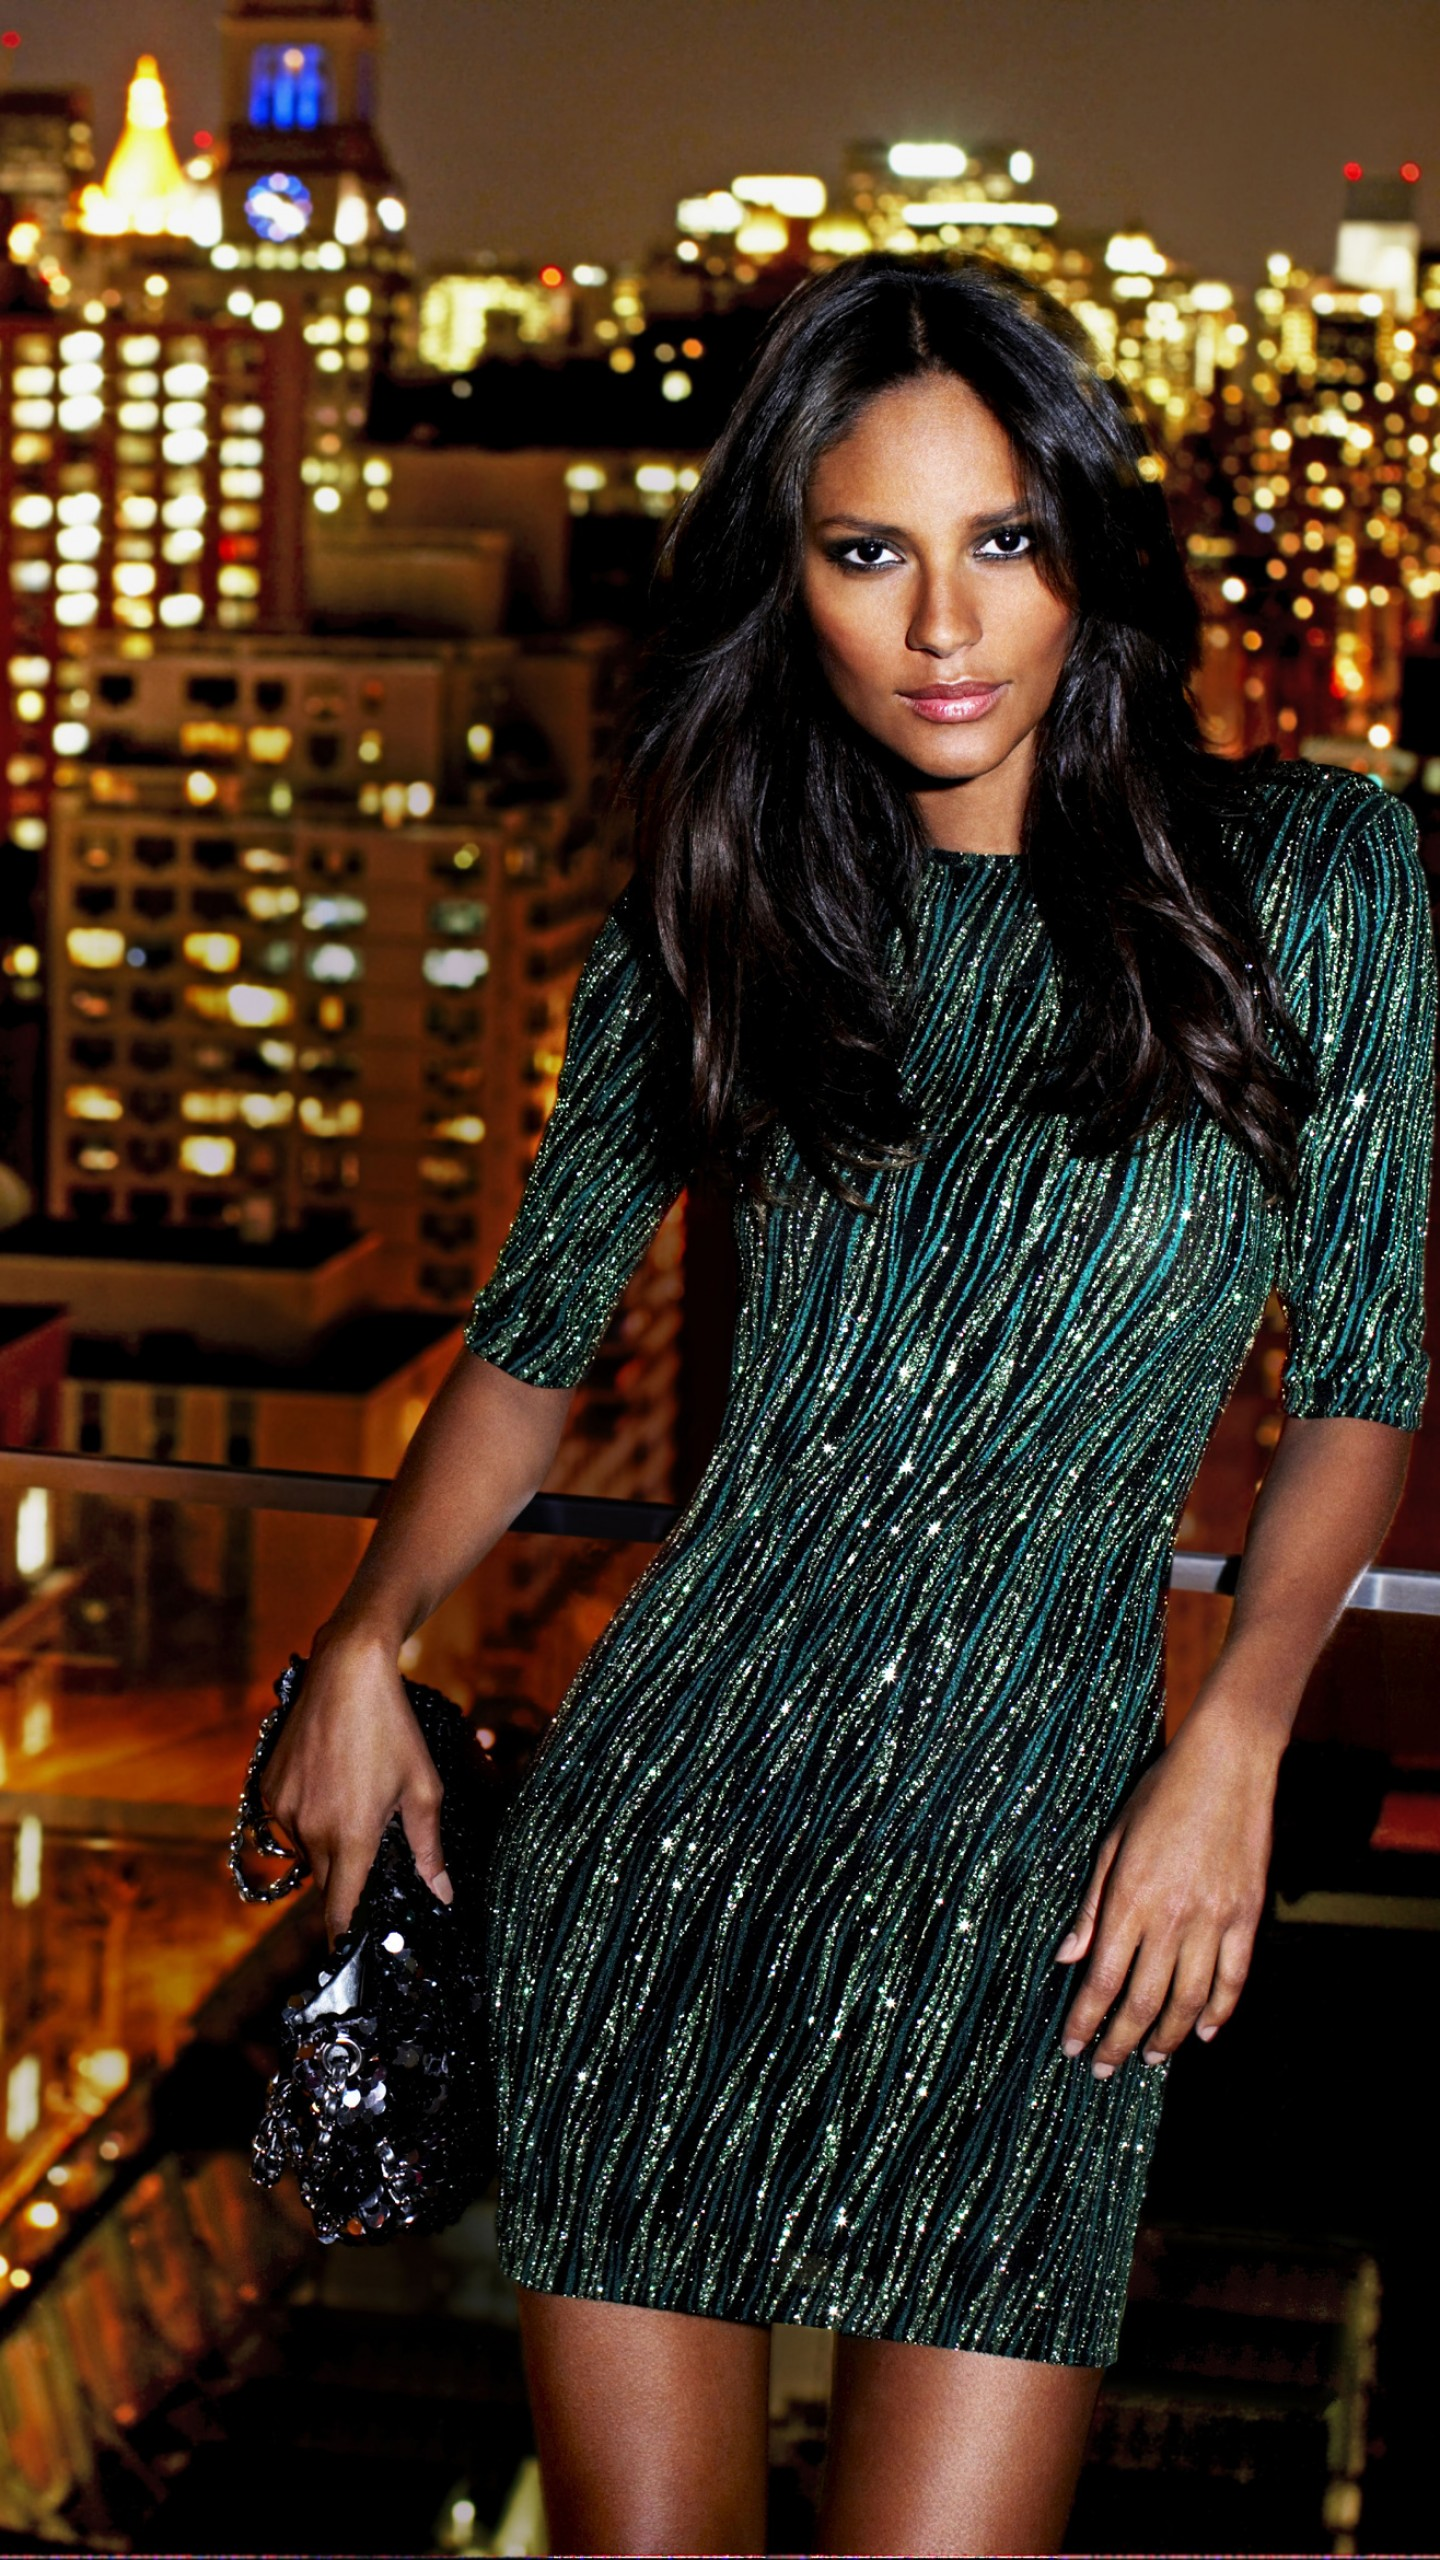 Pinterest Wallpaper Quotes Wallpaper Emanuela De Paula Model Brunette Dress City